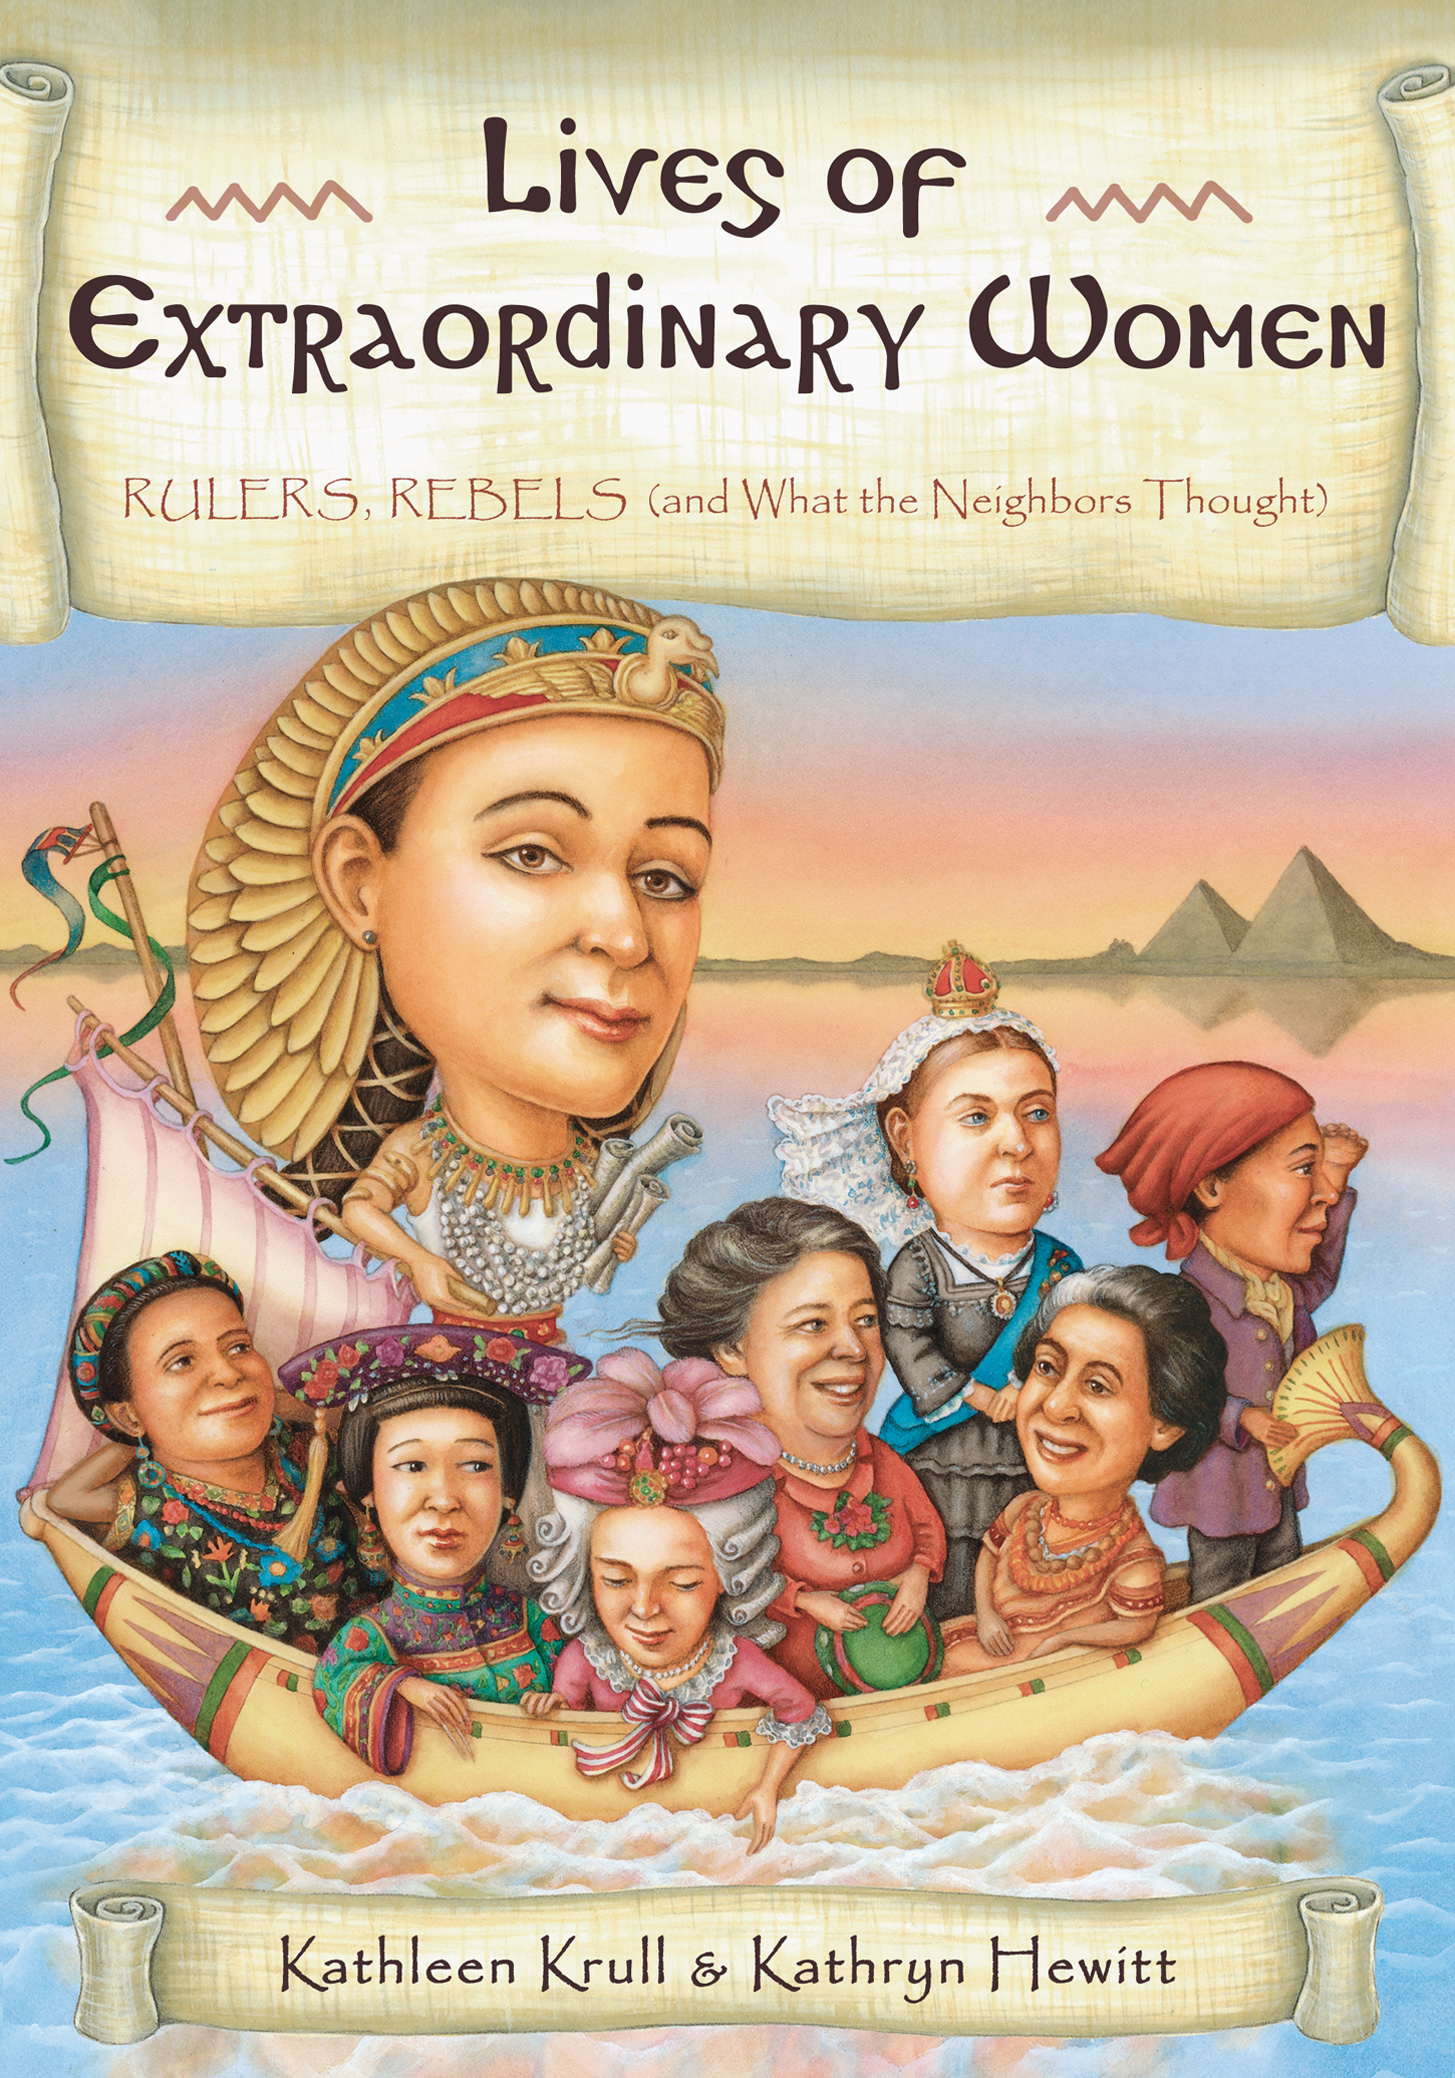 Lives of Extraordinary Women: Rulers, Rebels (and What the Neighbors Thought) - Kathleen Krull, illustrated by Kathryn Hewitt   Houghton Mifflin Harcourt 2013Not all governments have been run by men.Lives of Extraordinary Women turns the spotlight on women who have wielded power, revealing their feats--and flaws--for all the world to see. Here you'll find twenty of the most influential women in history: queens, warriors, prime ministers, first ladies, revolutionary leaders. Some are revered. Others are notorious. What were they really like?In this grand addition to their highly praised series, Kathleen Krull and Kathryn Hewitt celebrate some of the world's most noteworthy women, ranging from the famous to those whose stories have rarely been told.